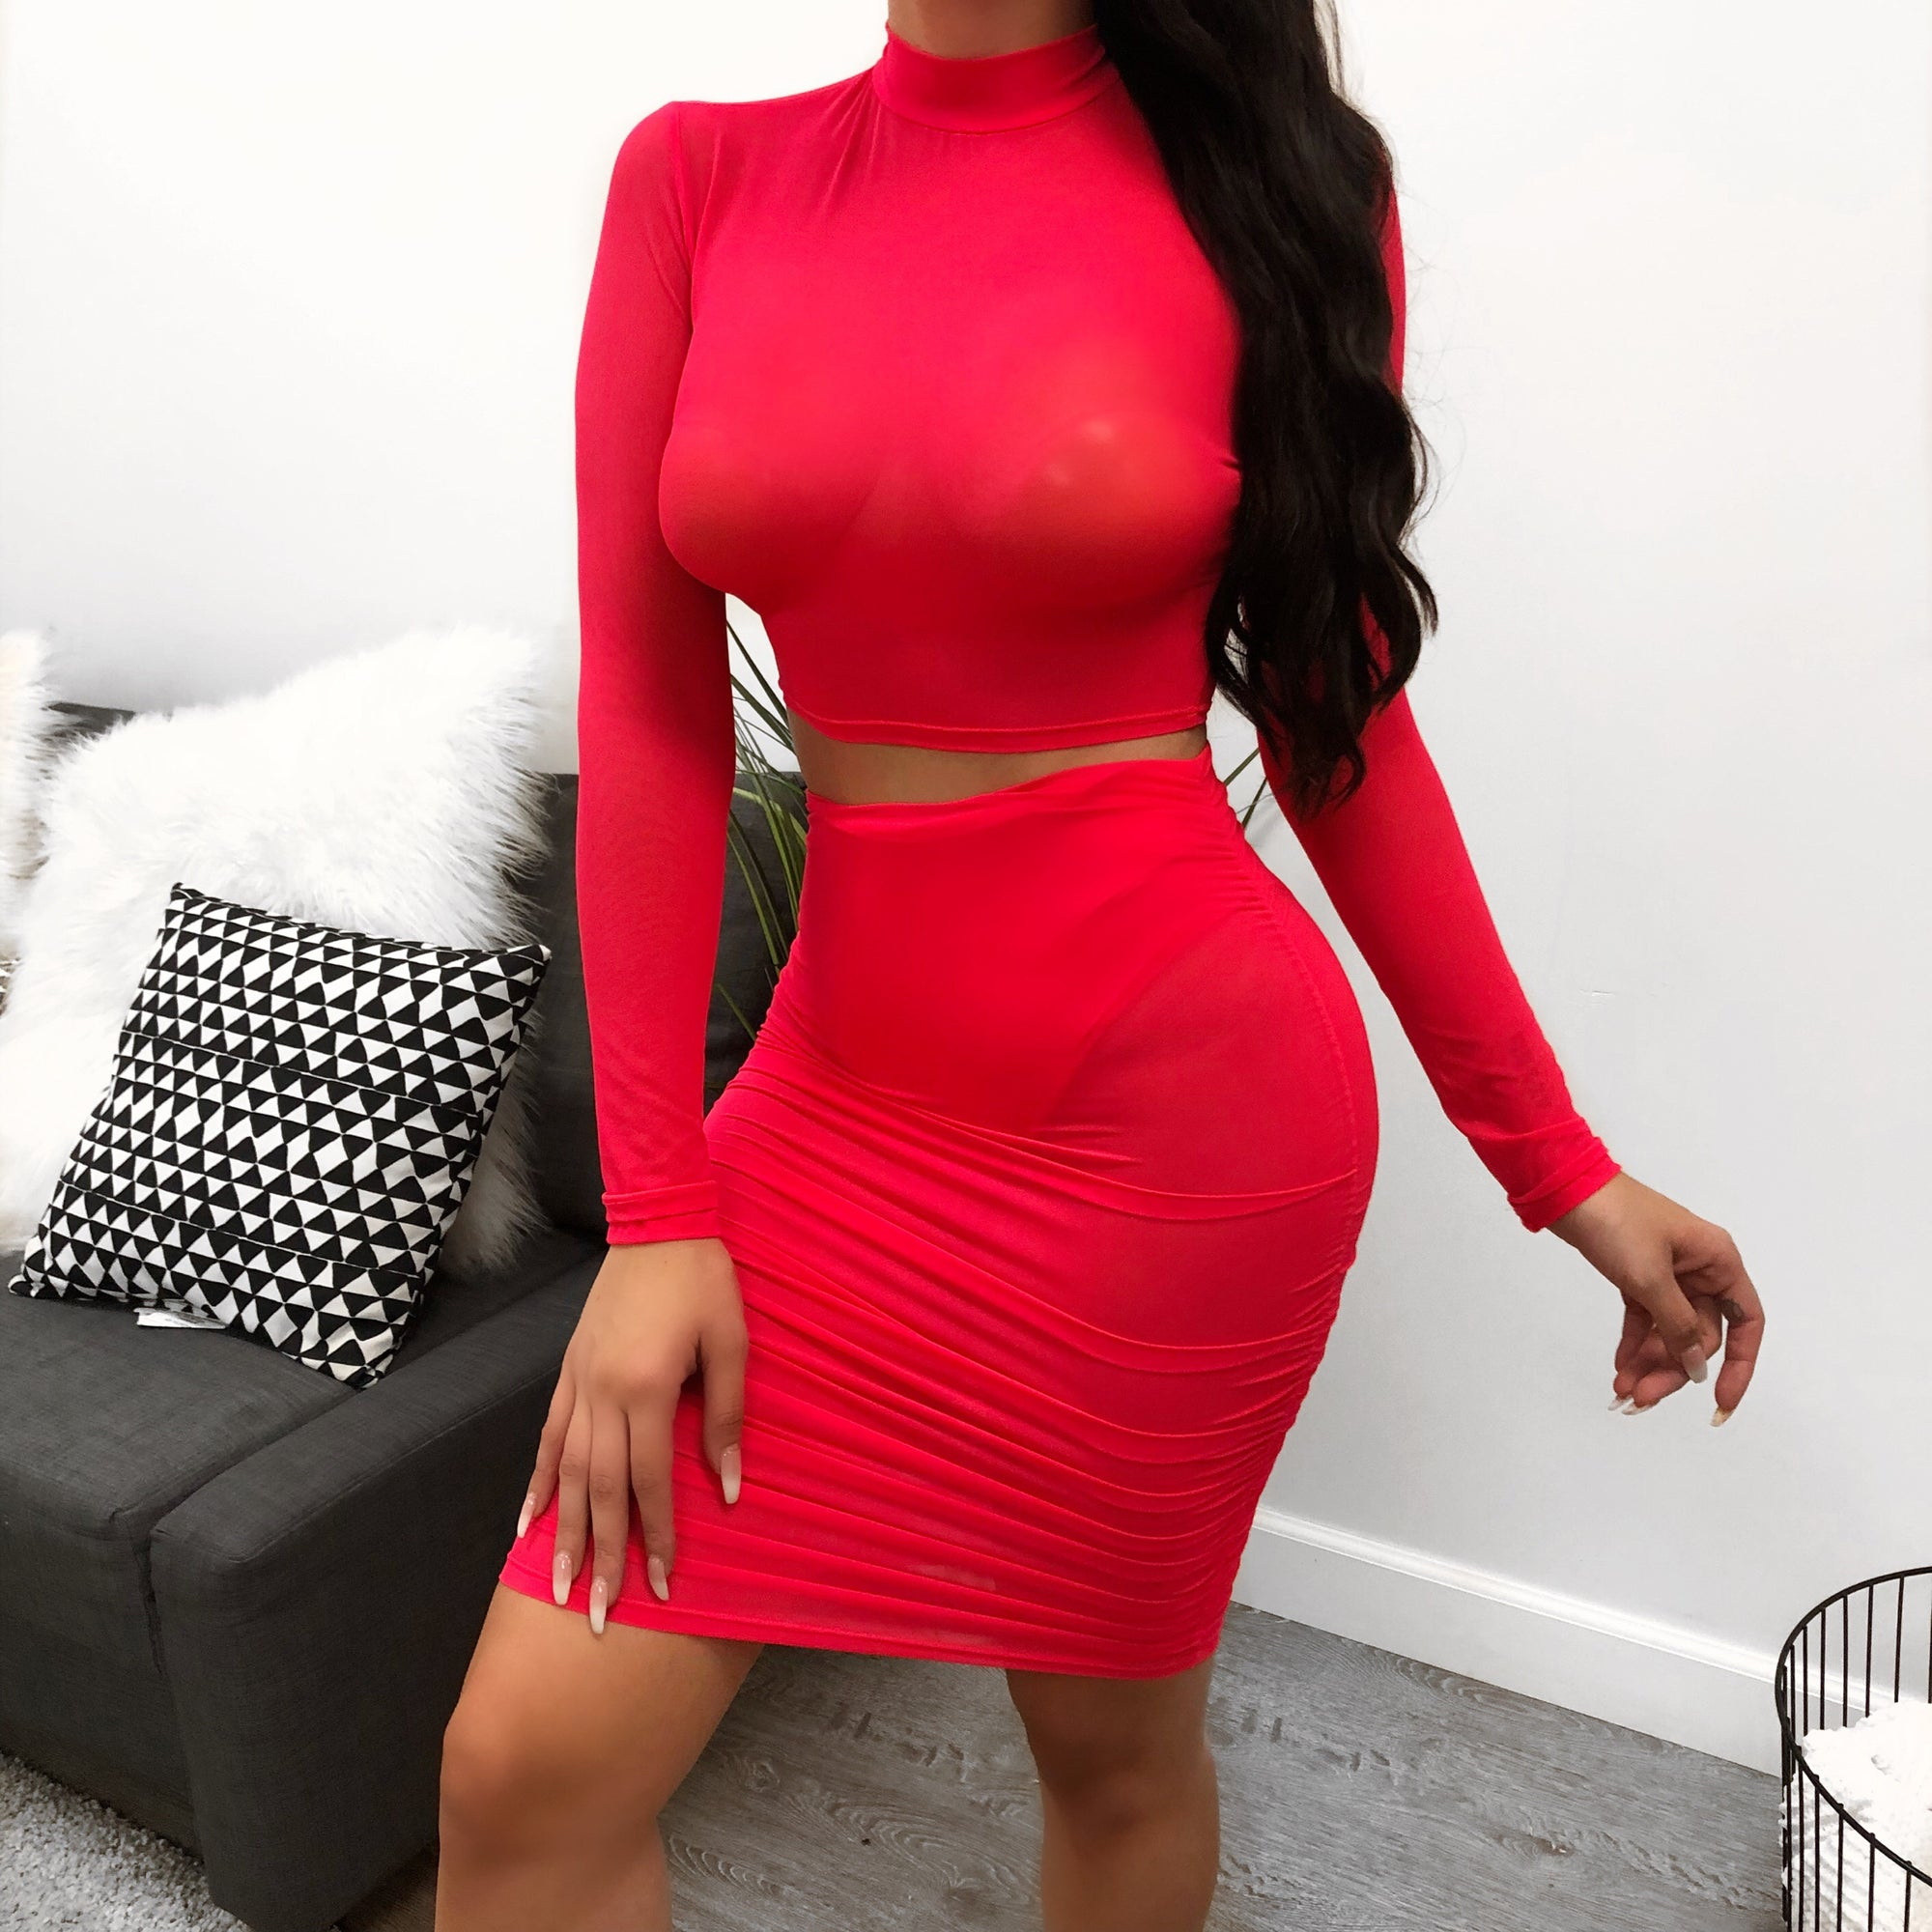 mesh neon pink two piece. long sleeve mesh top with funnel neckline. see through.  skirt is mesh and above the knee length. Undergarments not included.